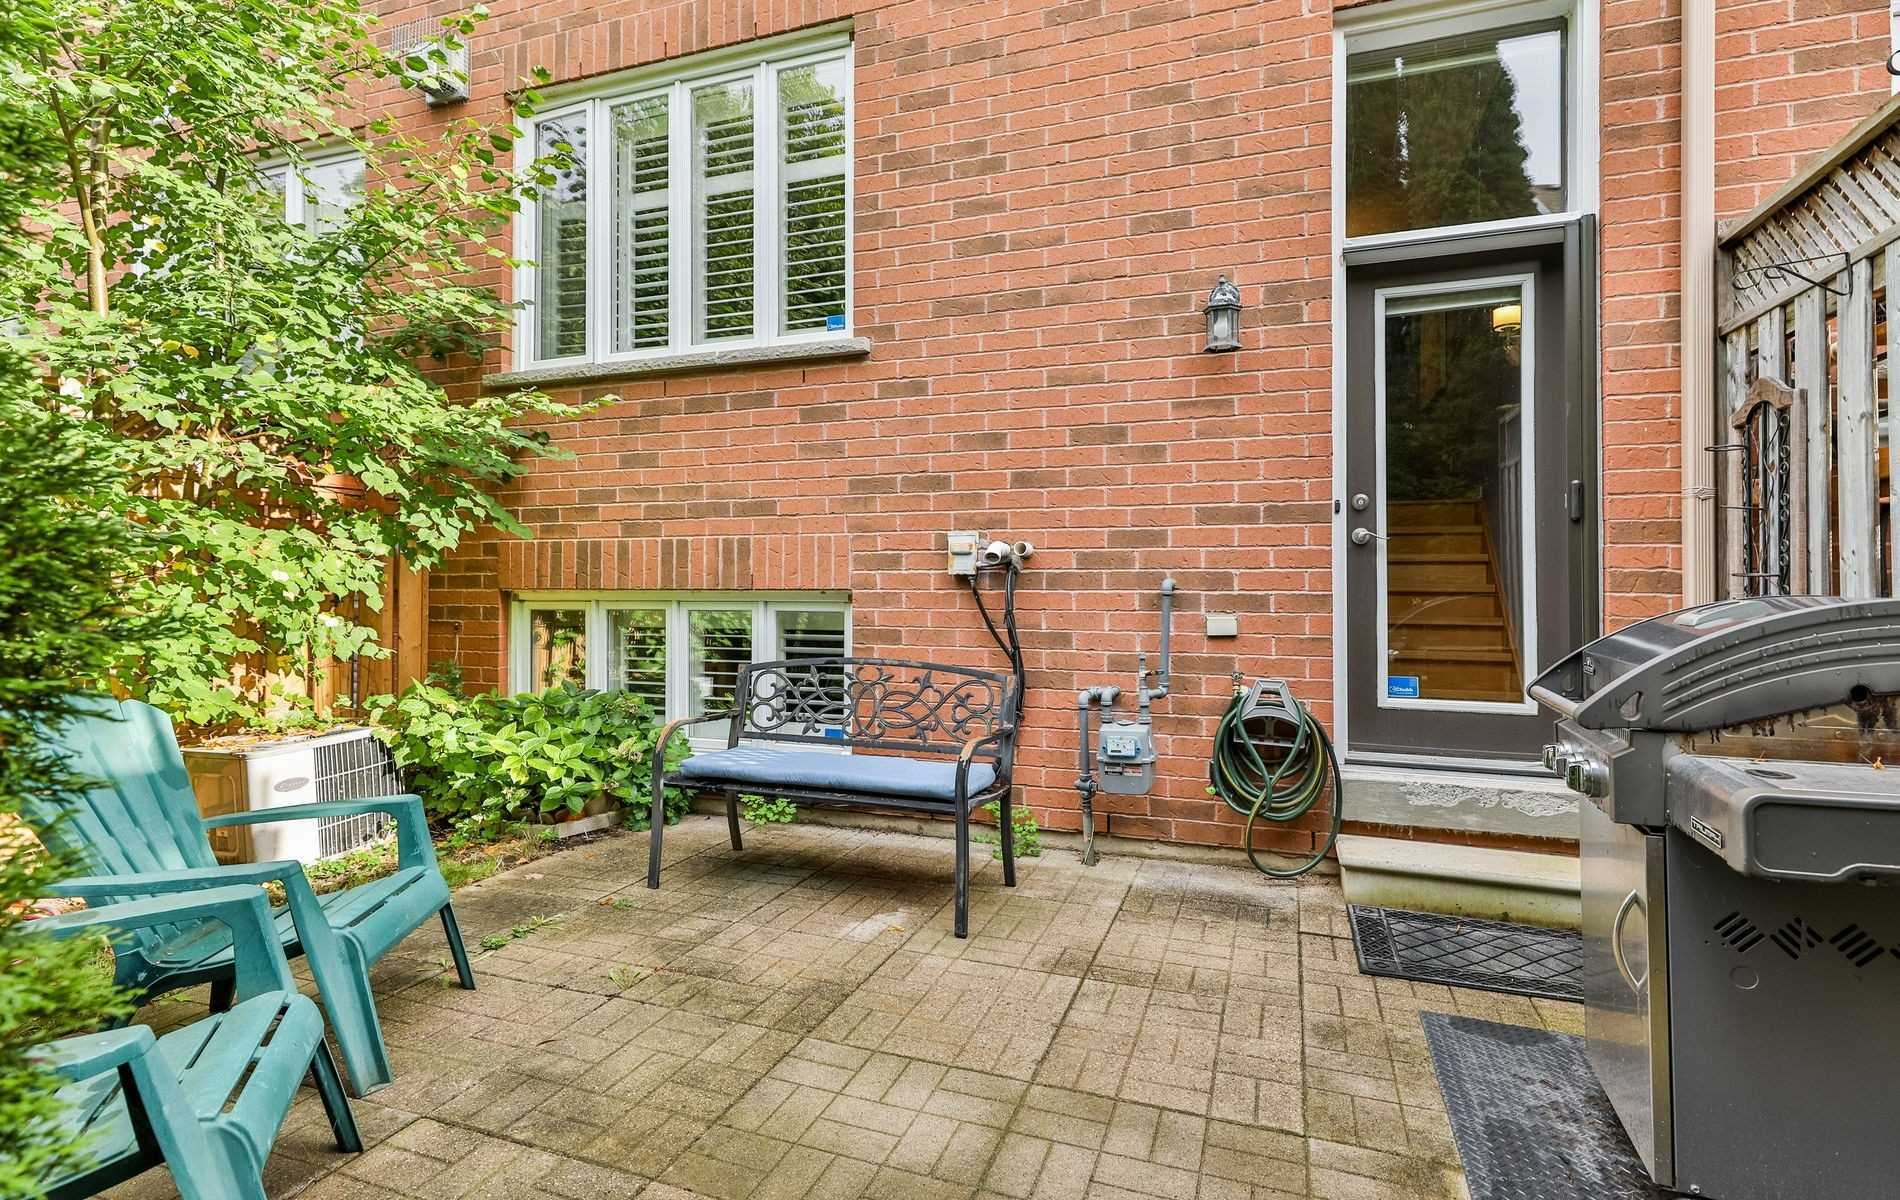 Condo Townhouse For Sale In Mississauga , 3 Bedrooms Bedrooms, ,3 BathroomsBathrooms,Condo Townhouse,For Sale,6C,Queen